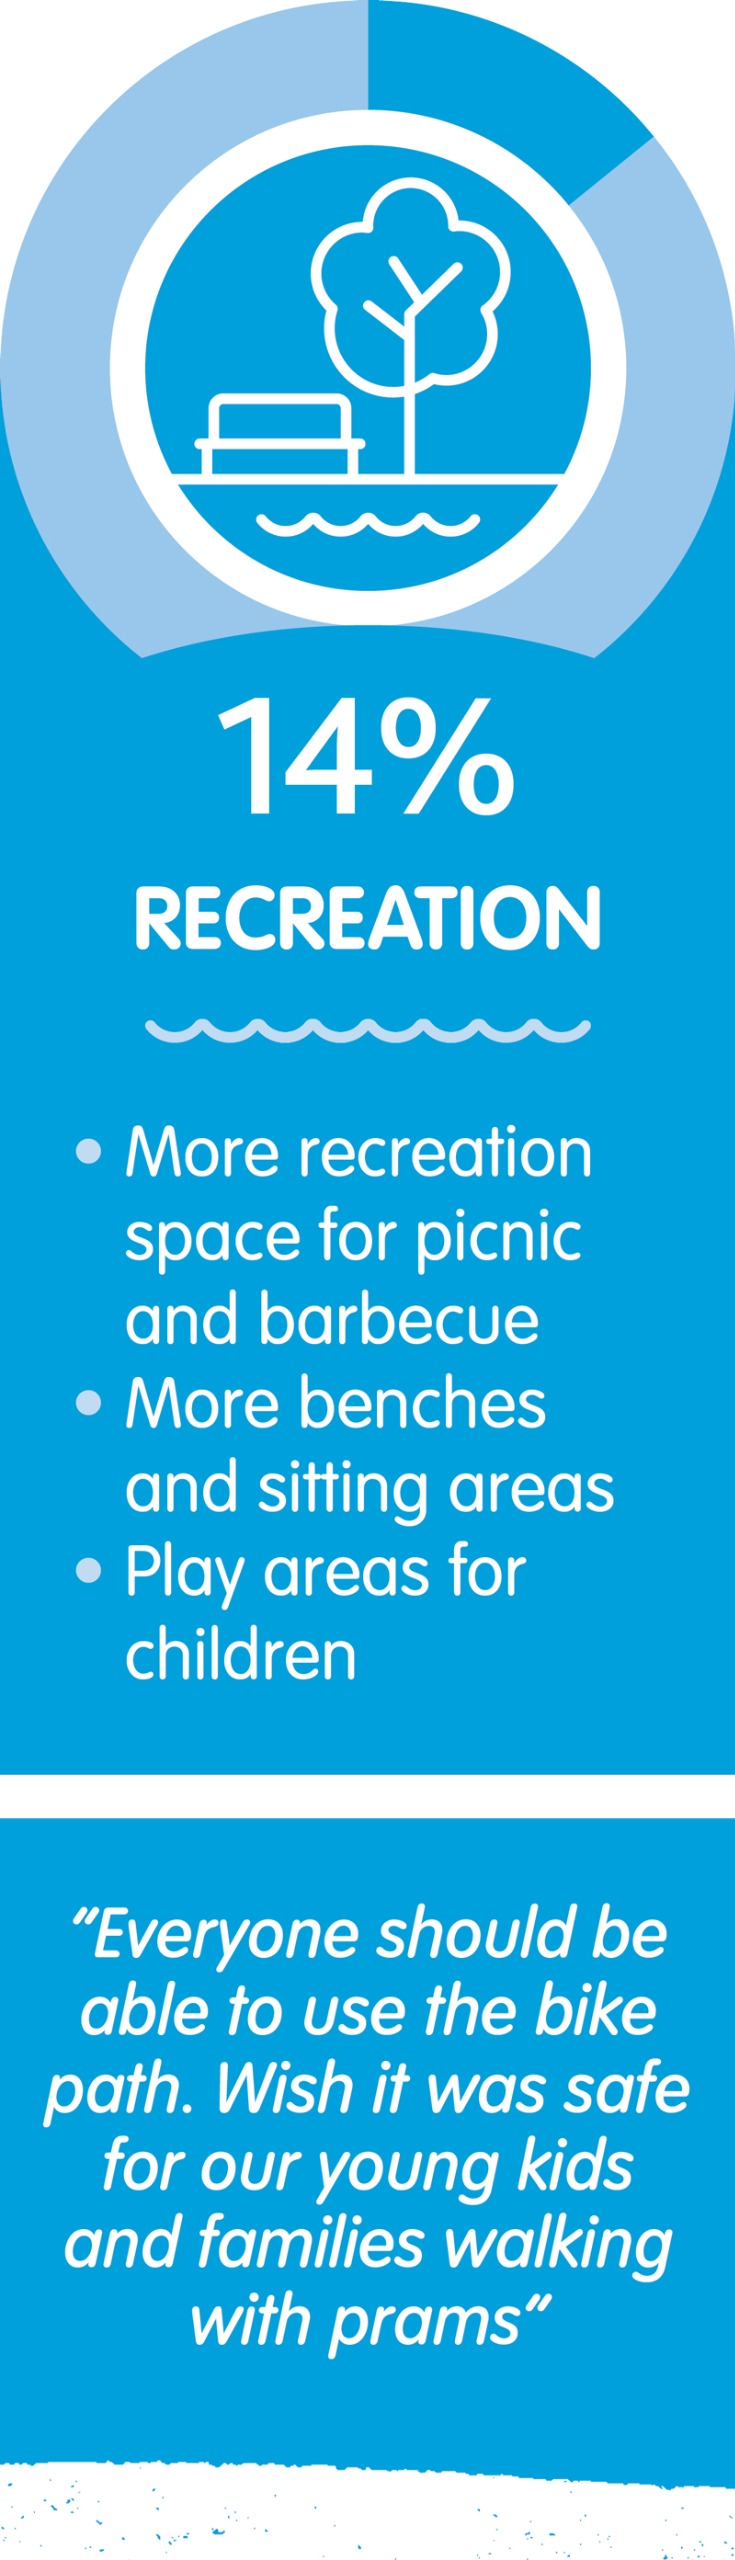 14 per cent of respondents supported more recreation space.